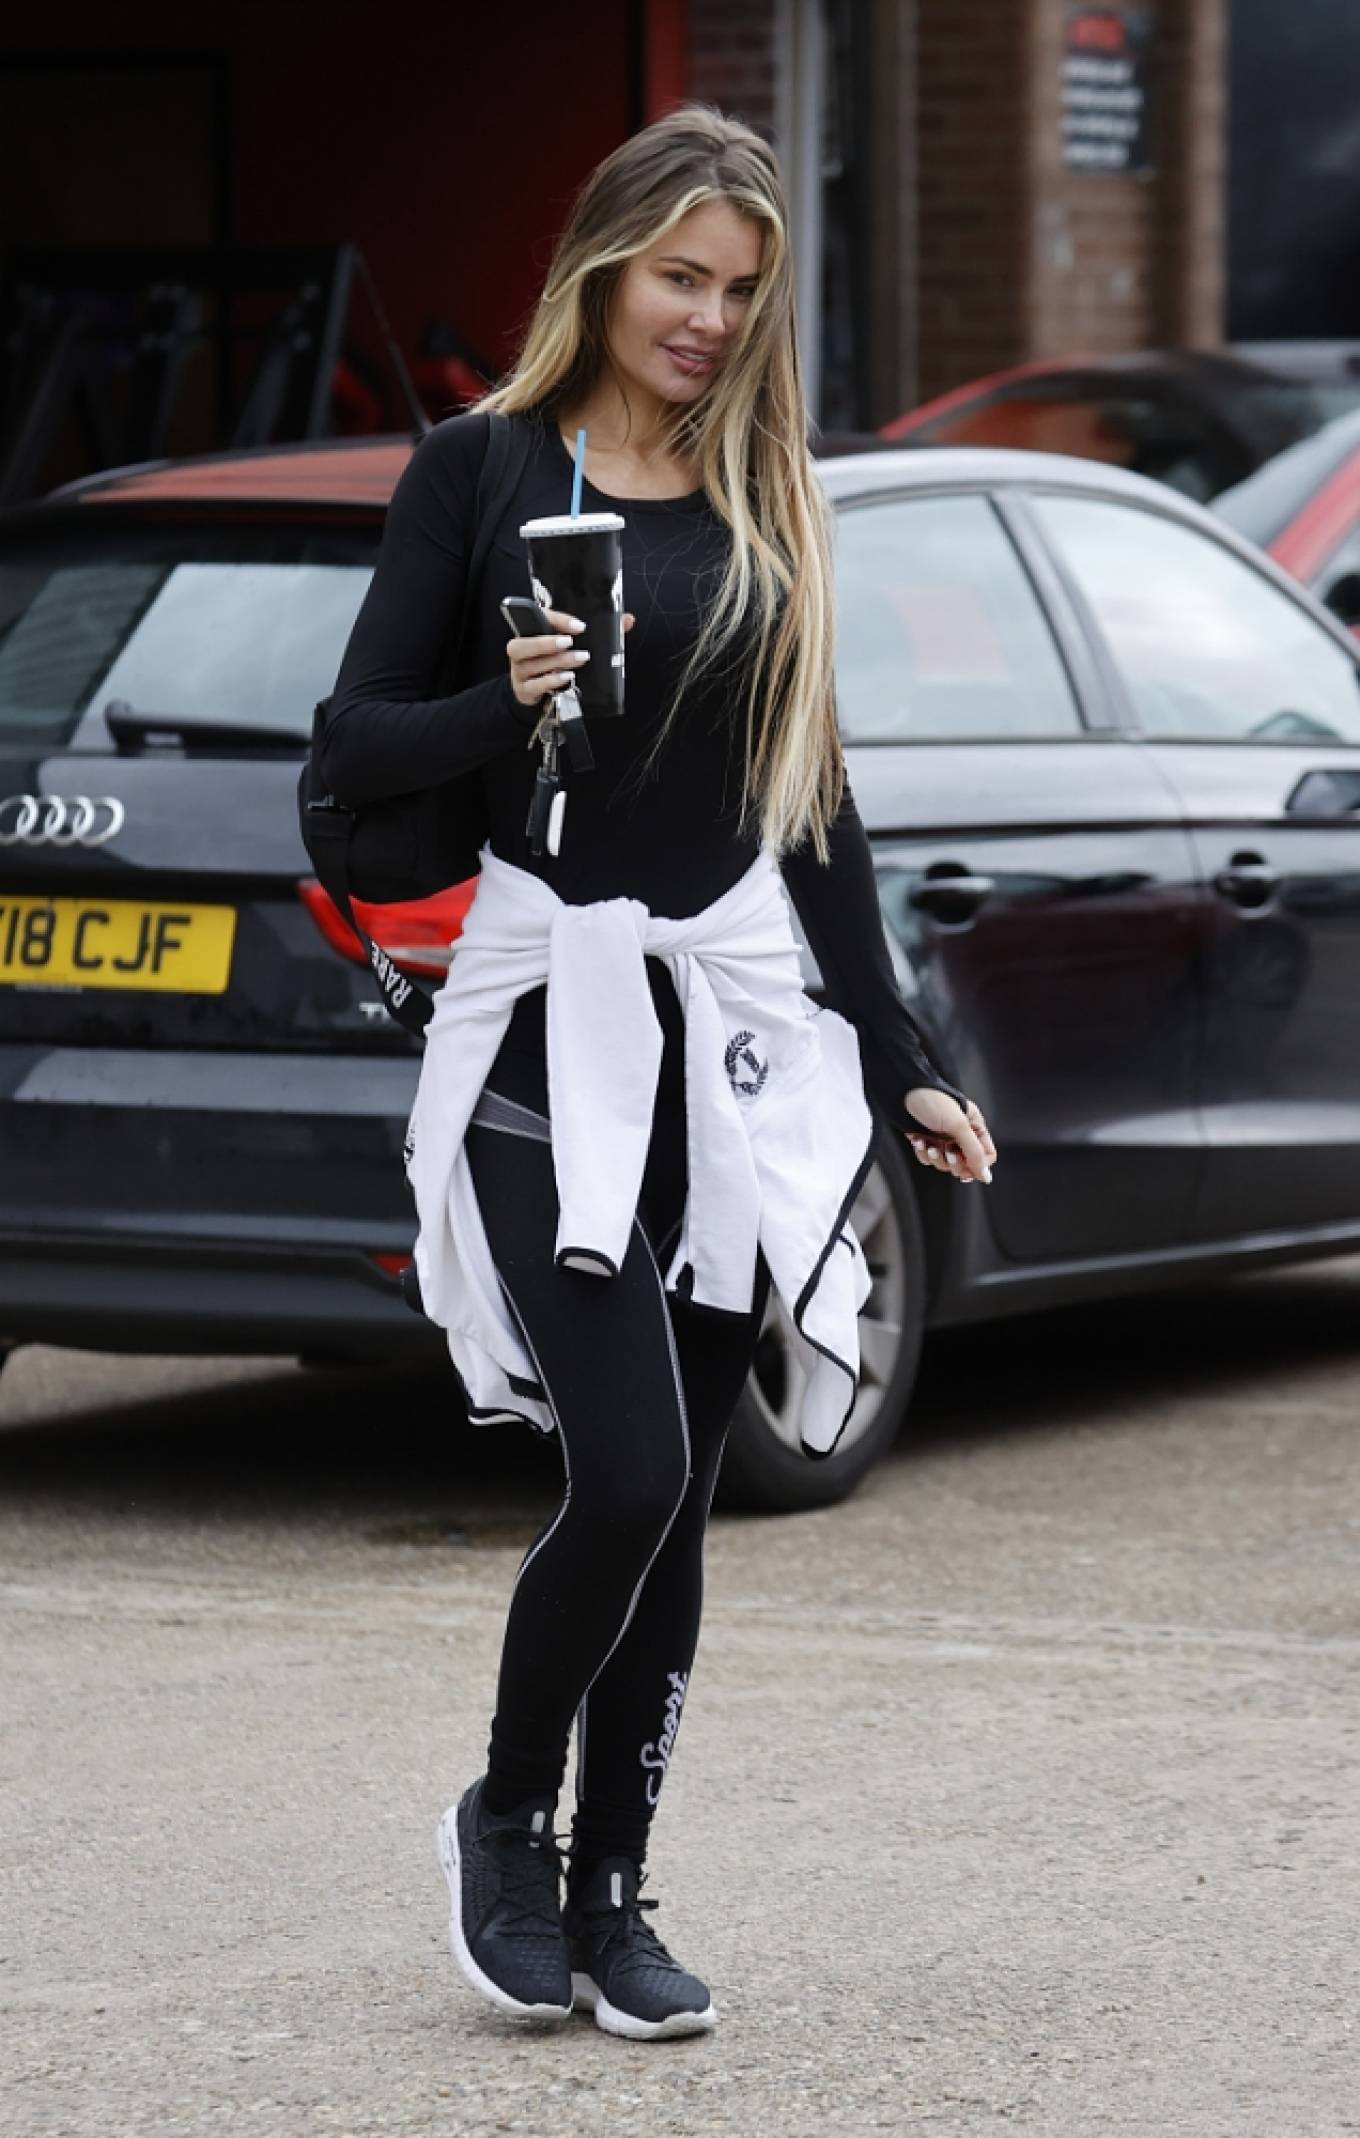 Chloe Sims 2021 : Chloe Sims – Seen make up free after a workout in Essex-12